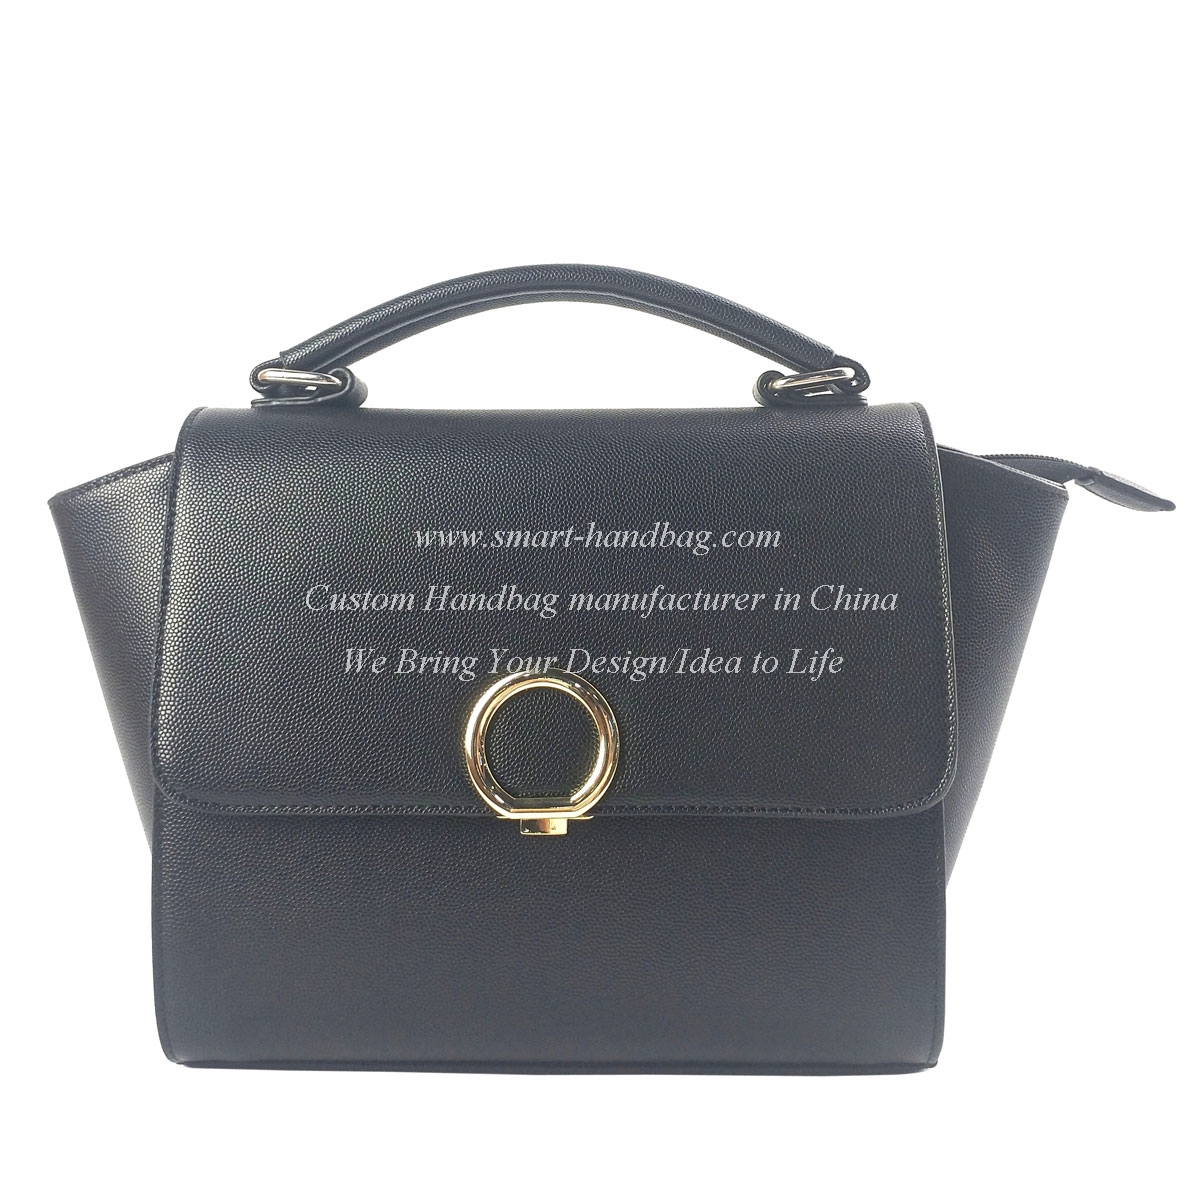 Satchel Handbag with Front Circle Locker